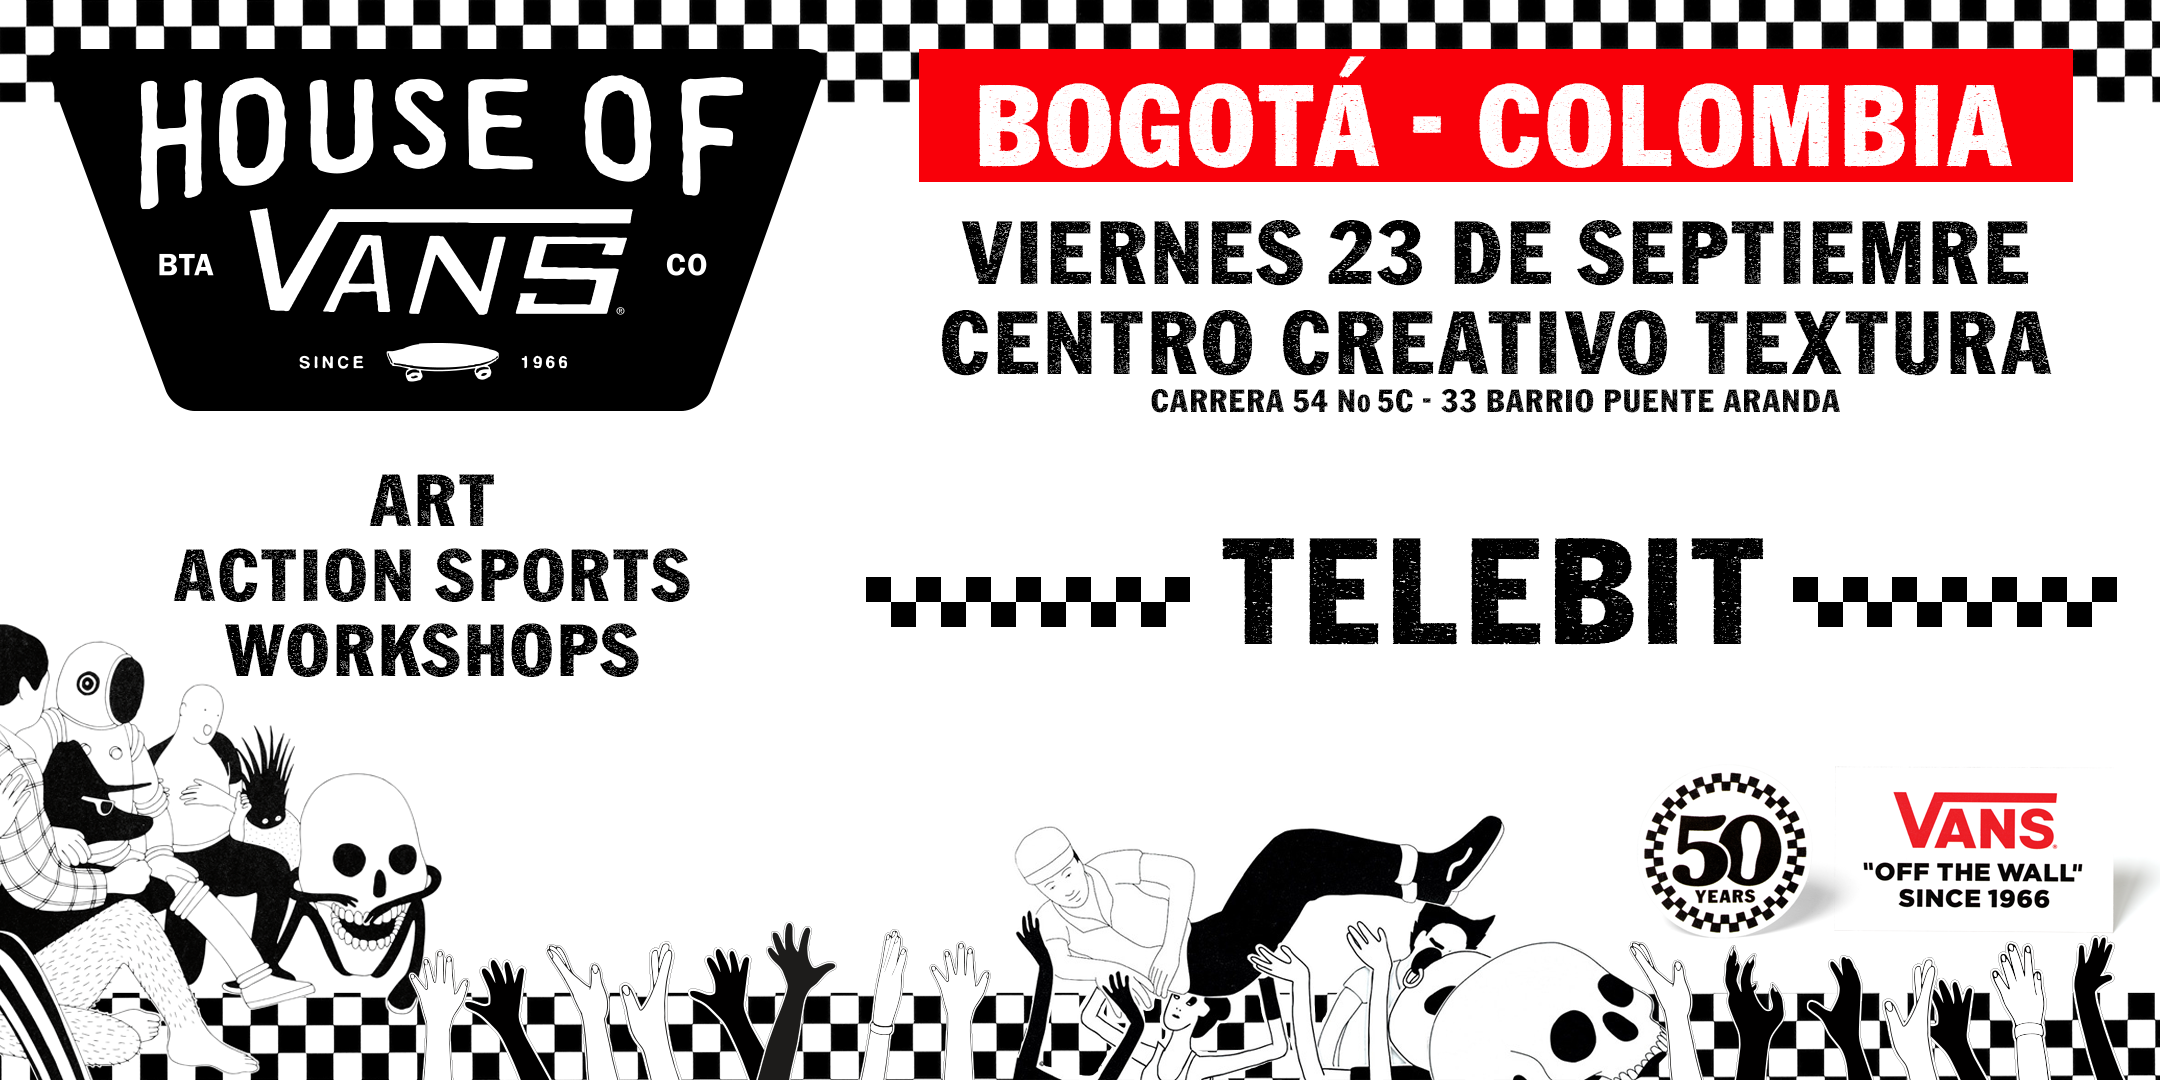 House of vans Bogoá